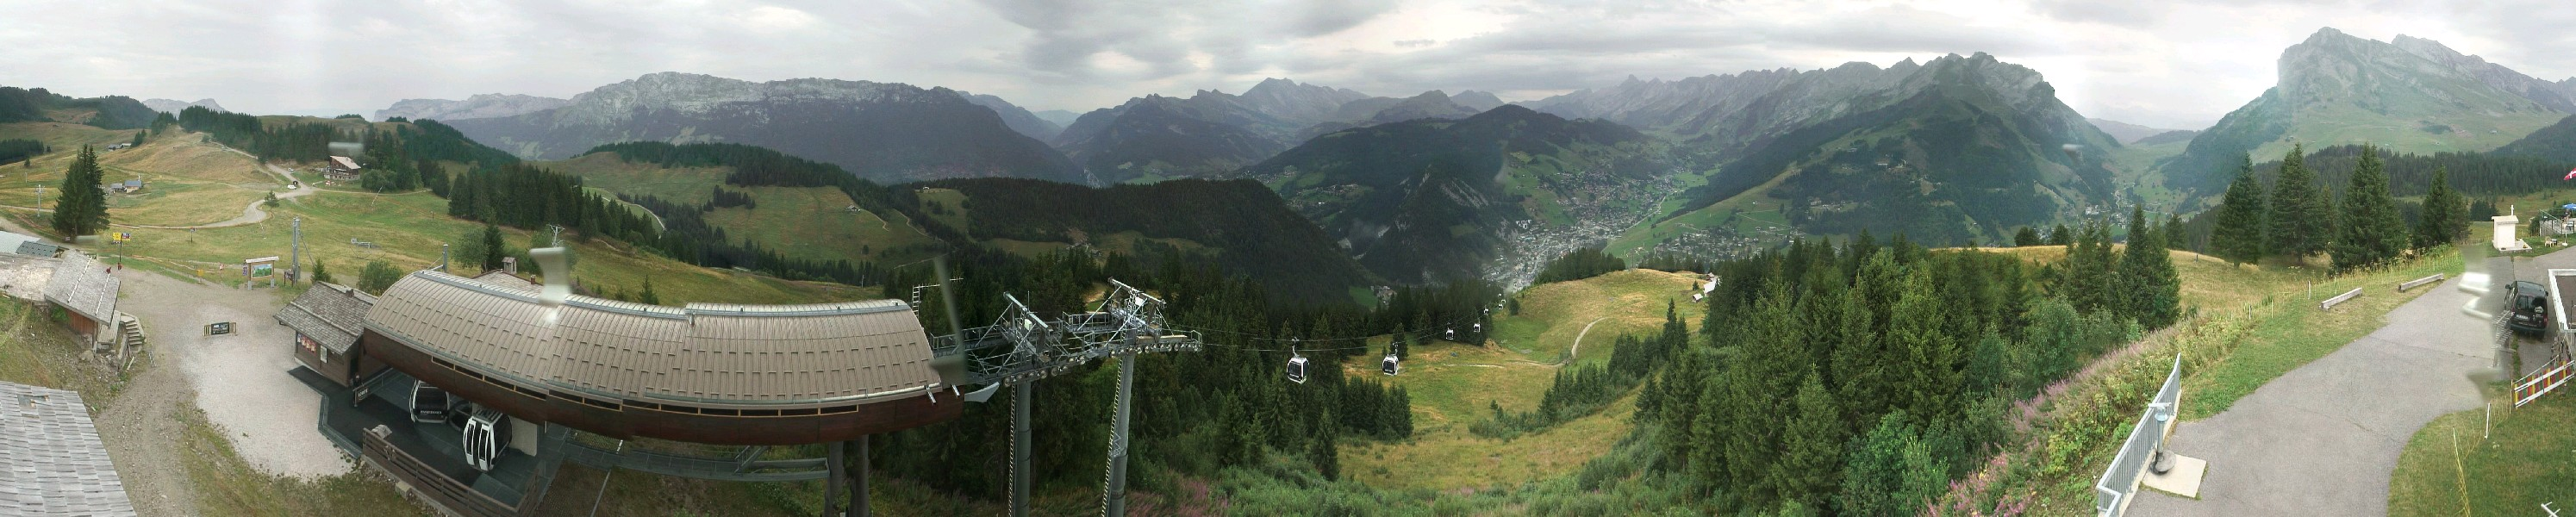 Webcam Panoramique la clusaz